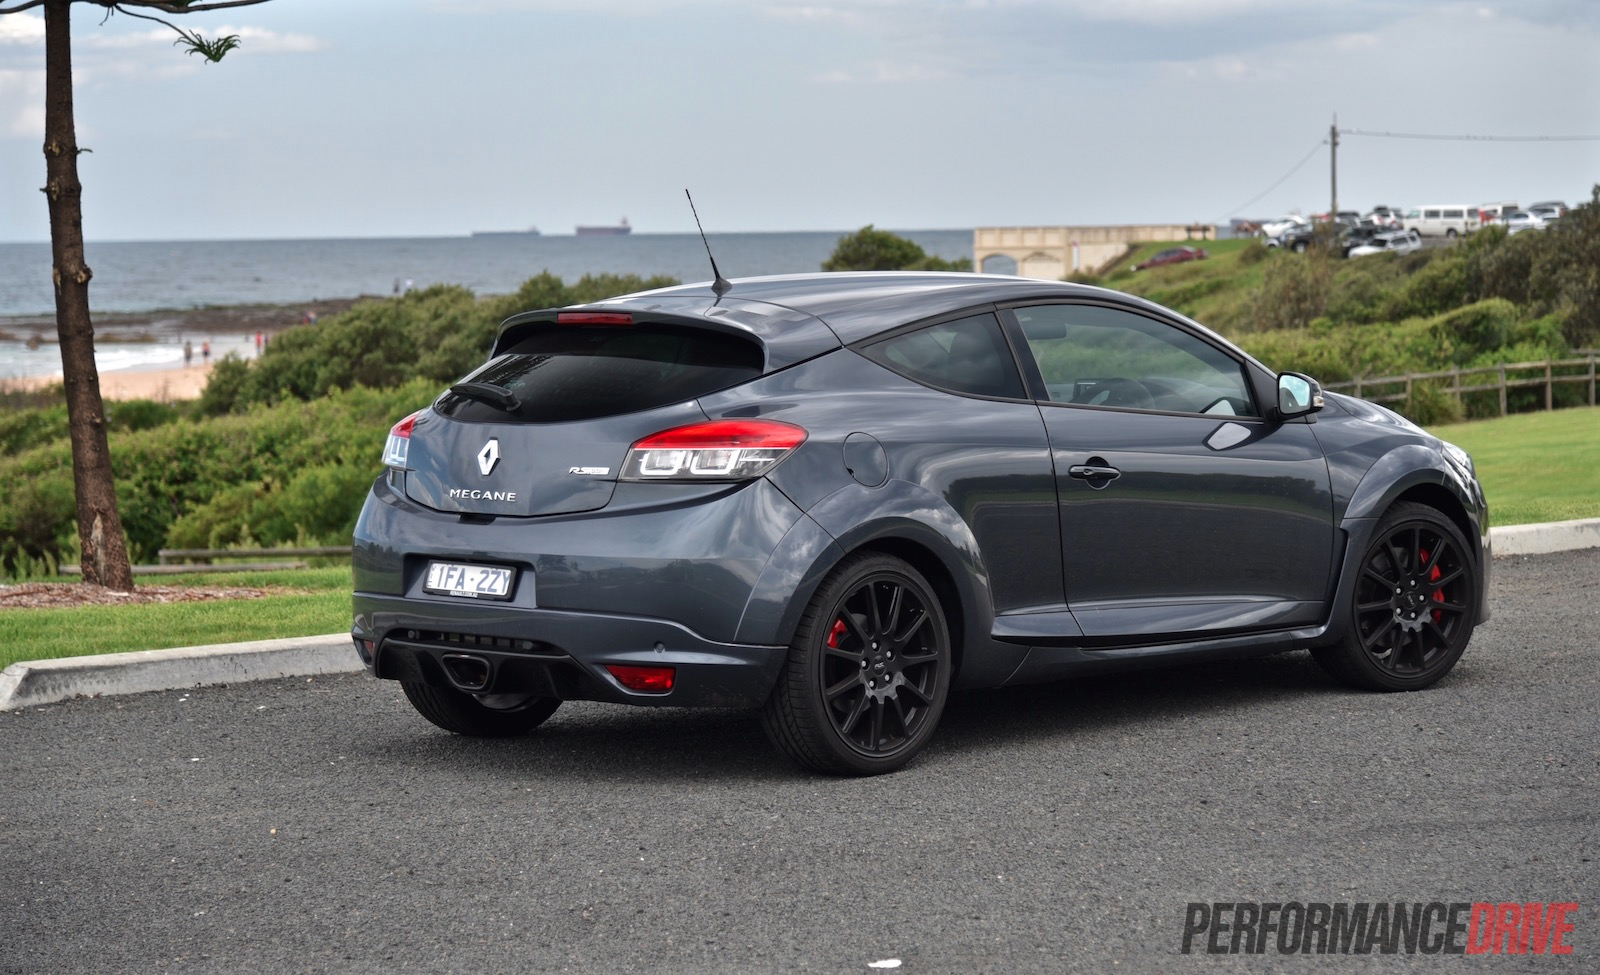 renault megane rs 275 rear. Black Bedroom Furniture Sets. Home Design Ideas